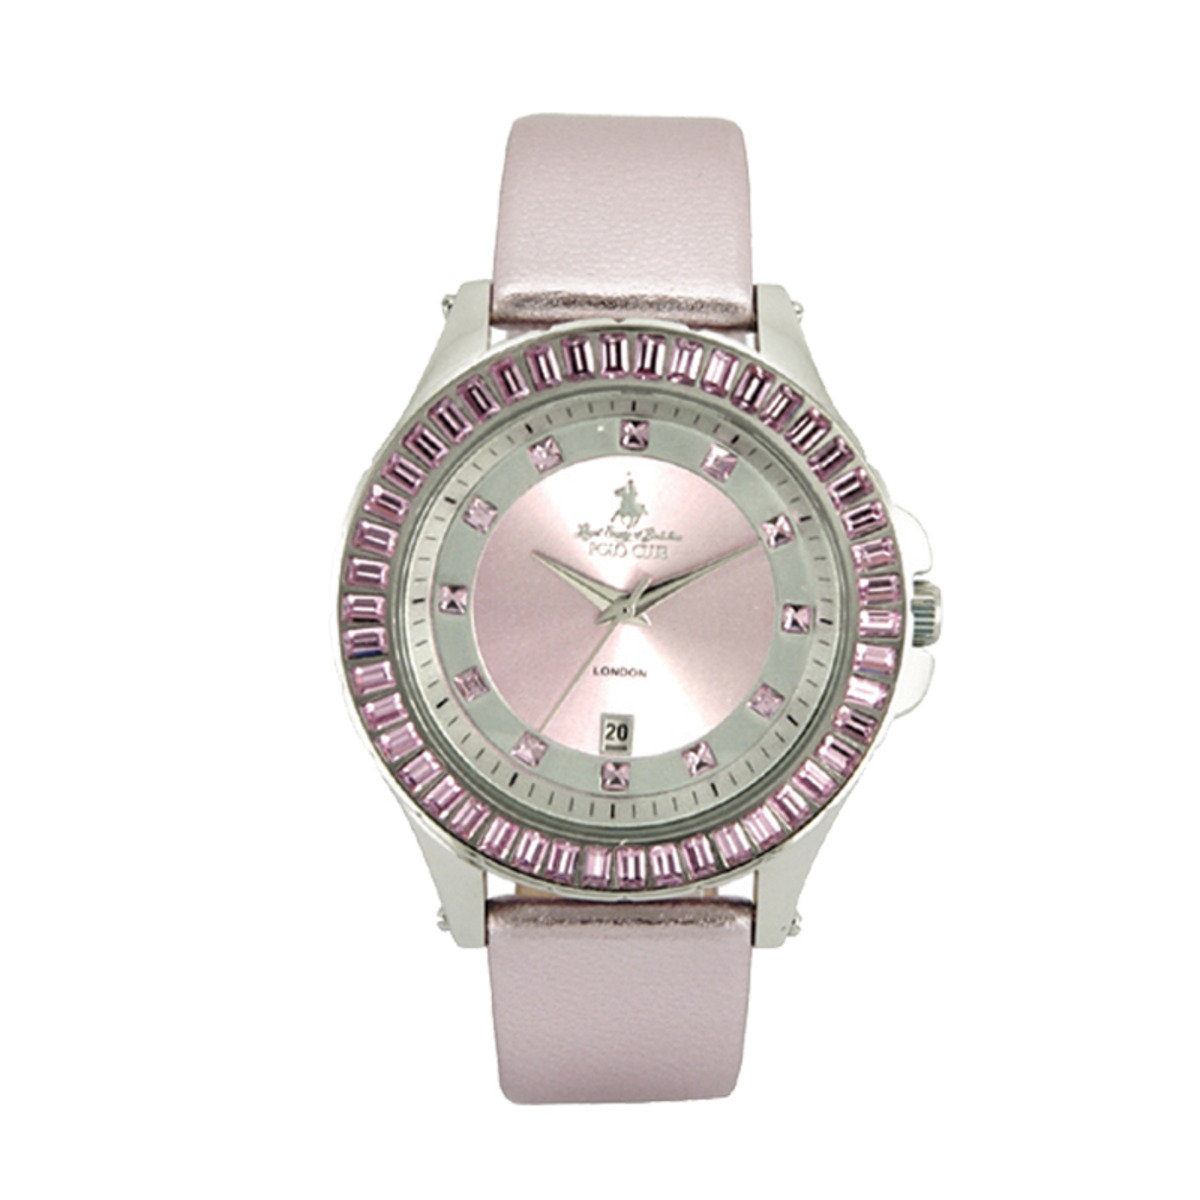 PL125-655PK Watch